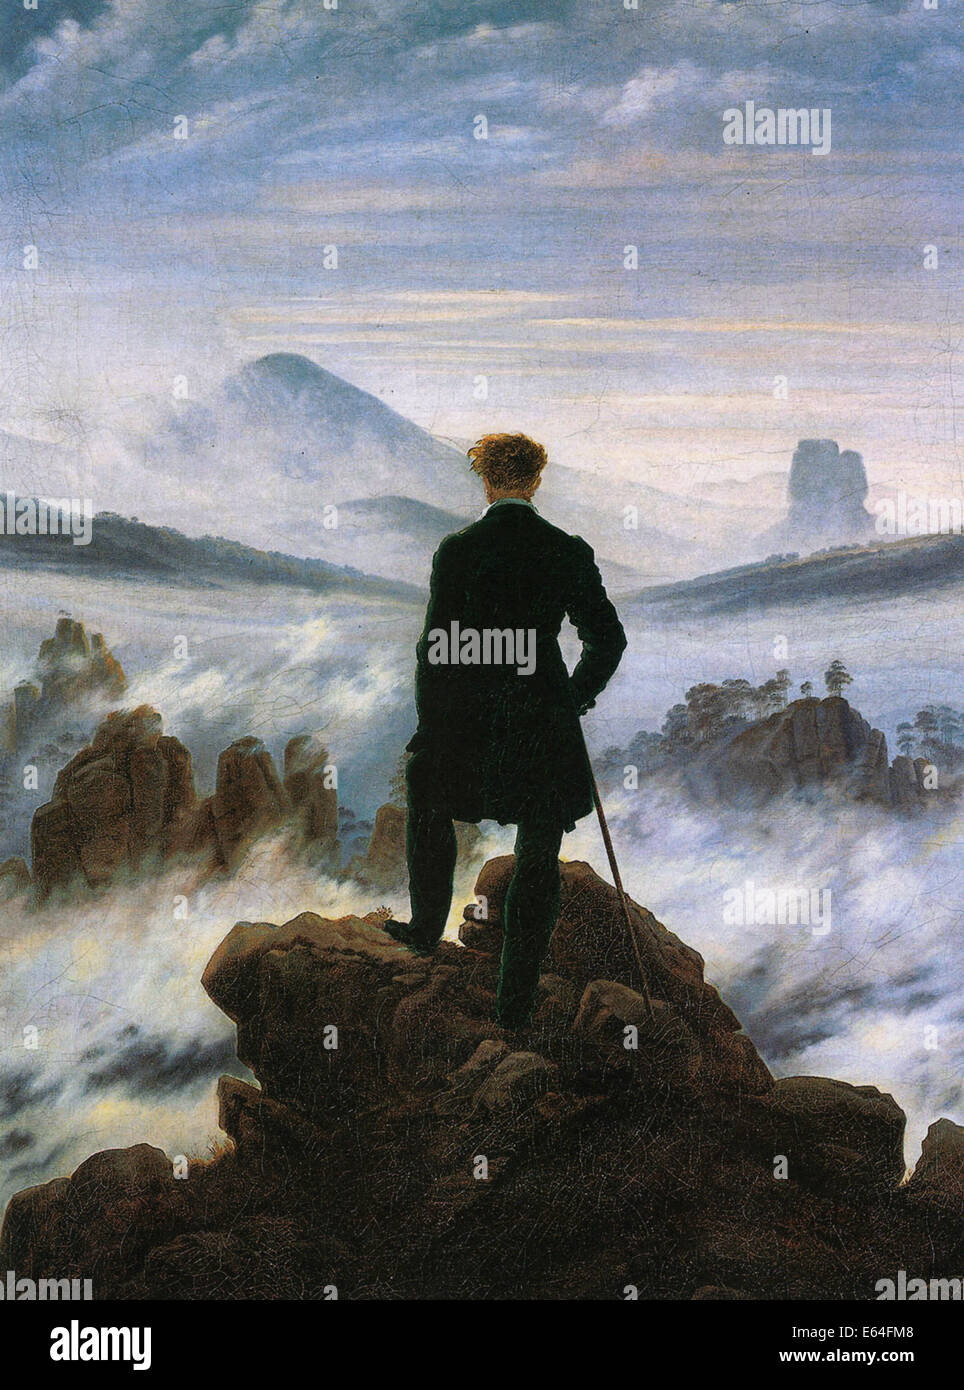 WANDERED ABOVE A SEA OF FOG  Painted in 1818 by German Romantic artist Caspar David Friedrich - Stock Image